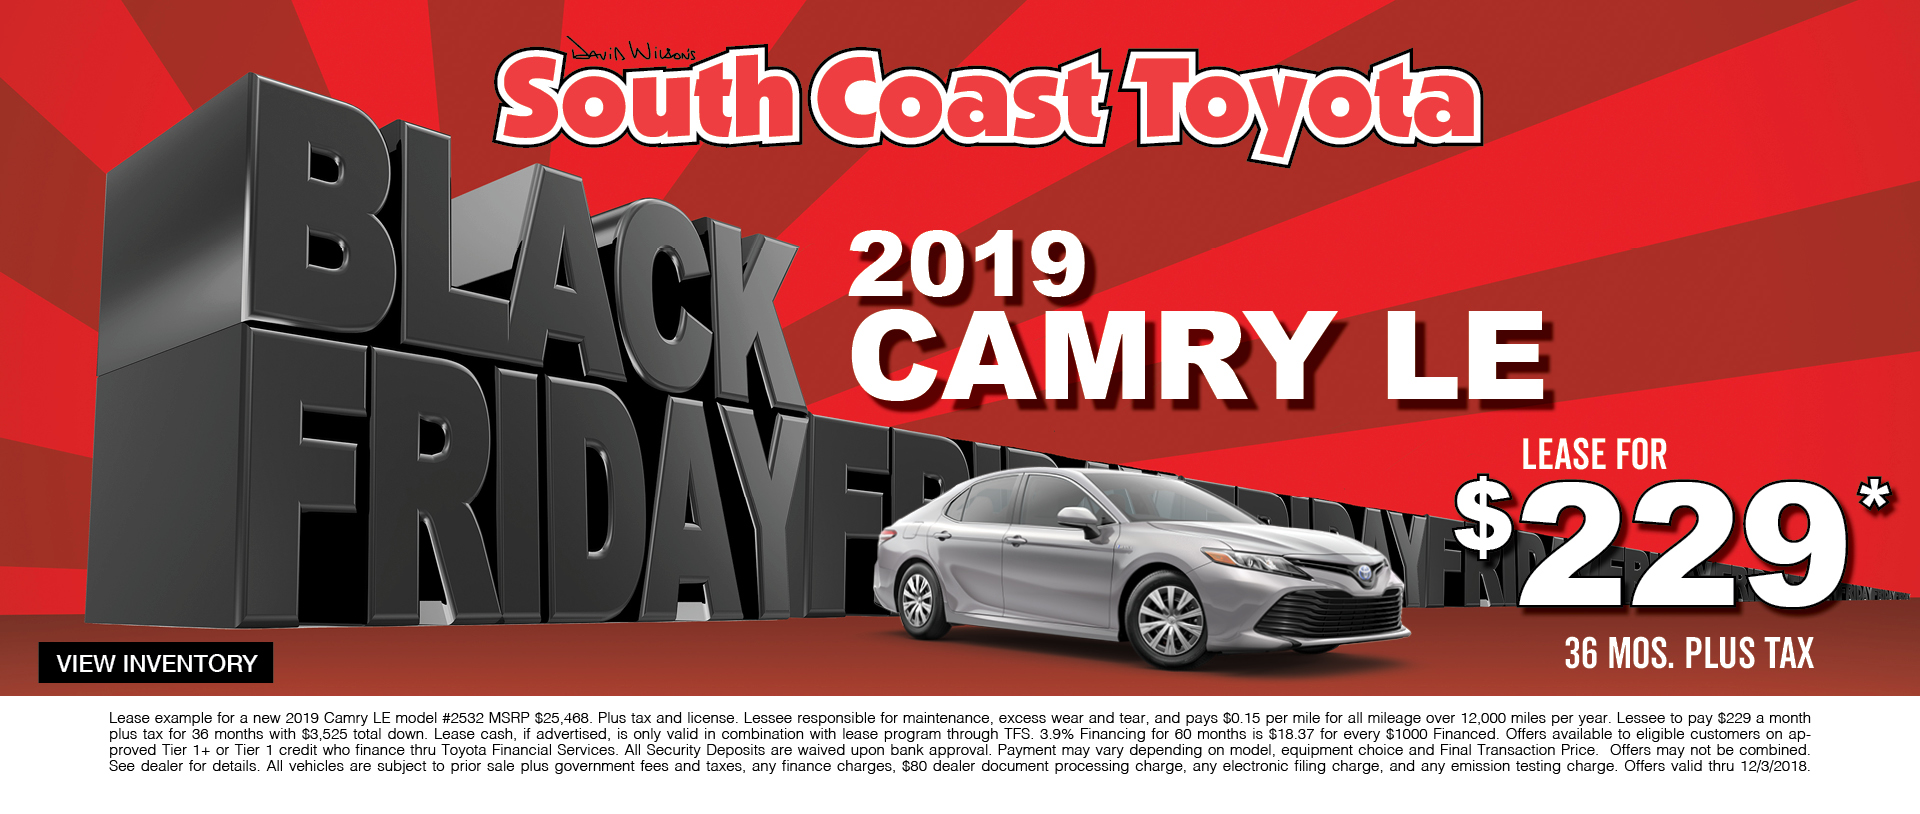 Toyota Camry $229 Lease